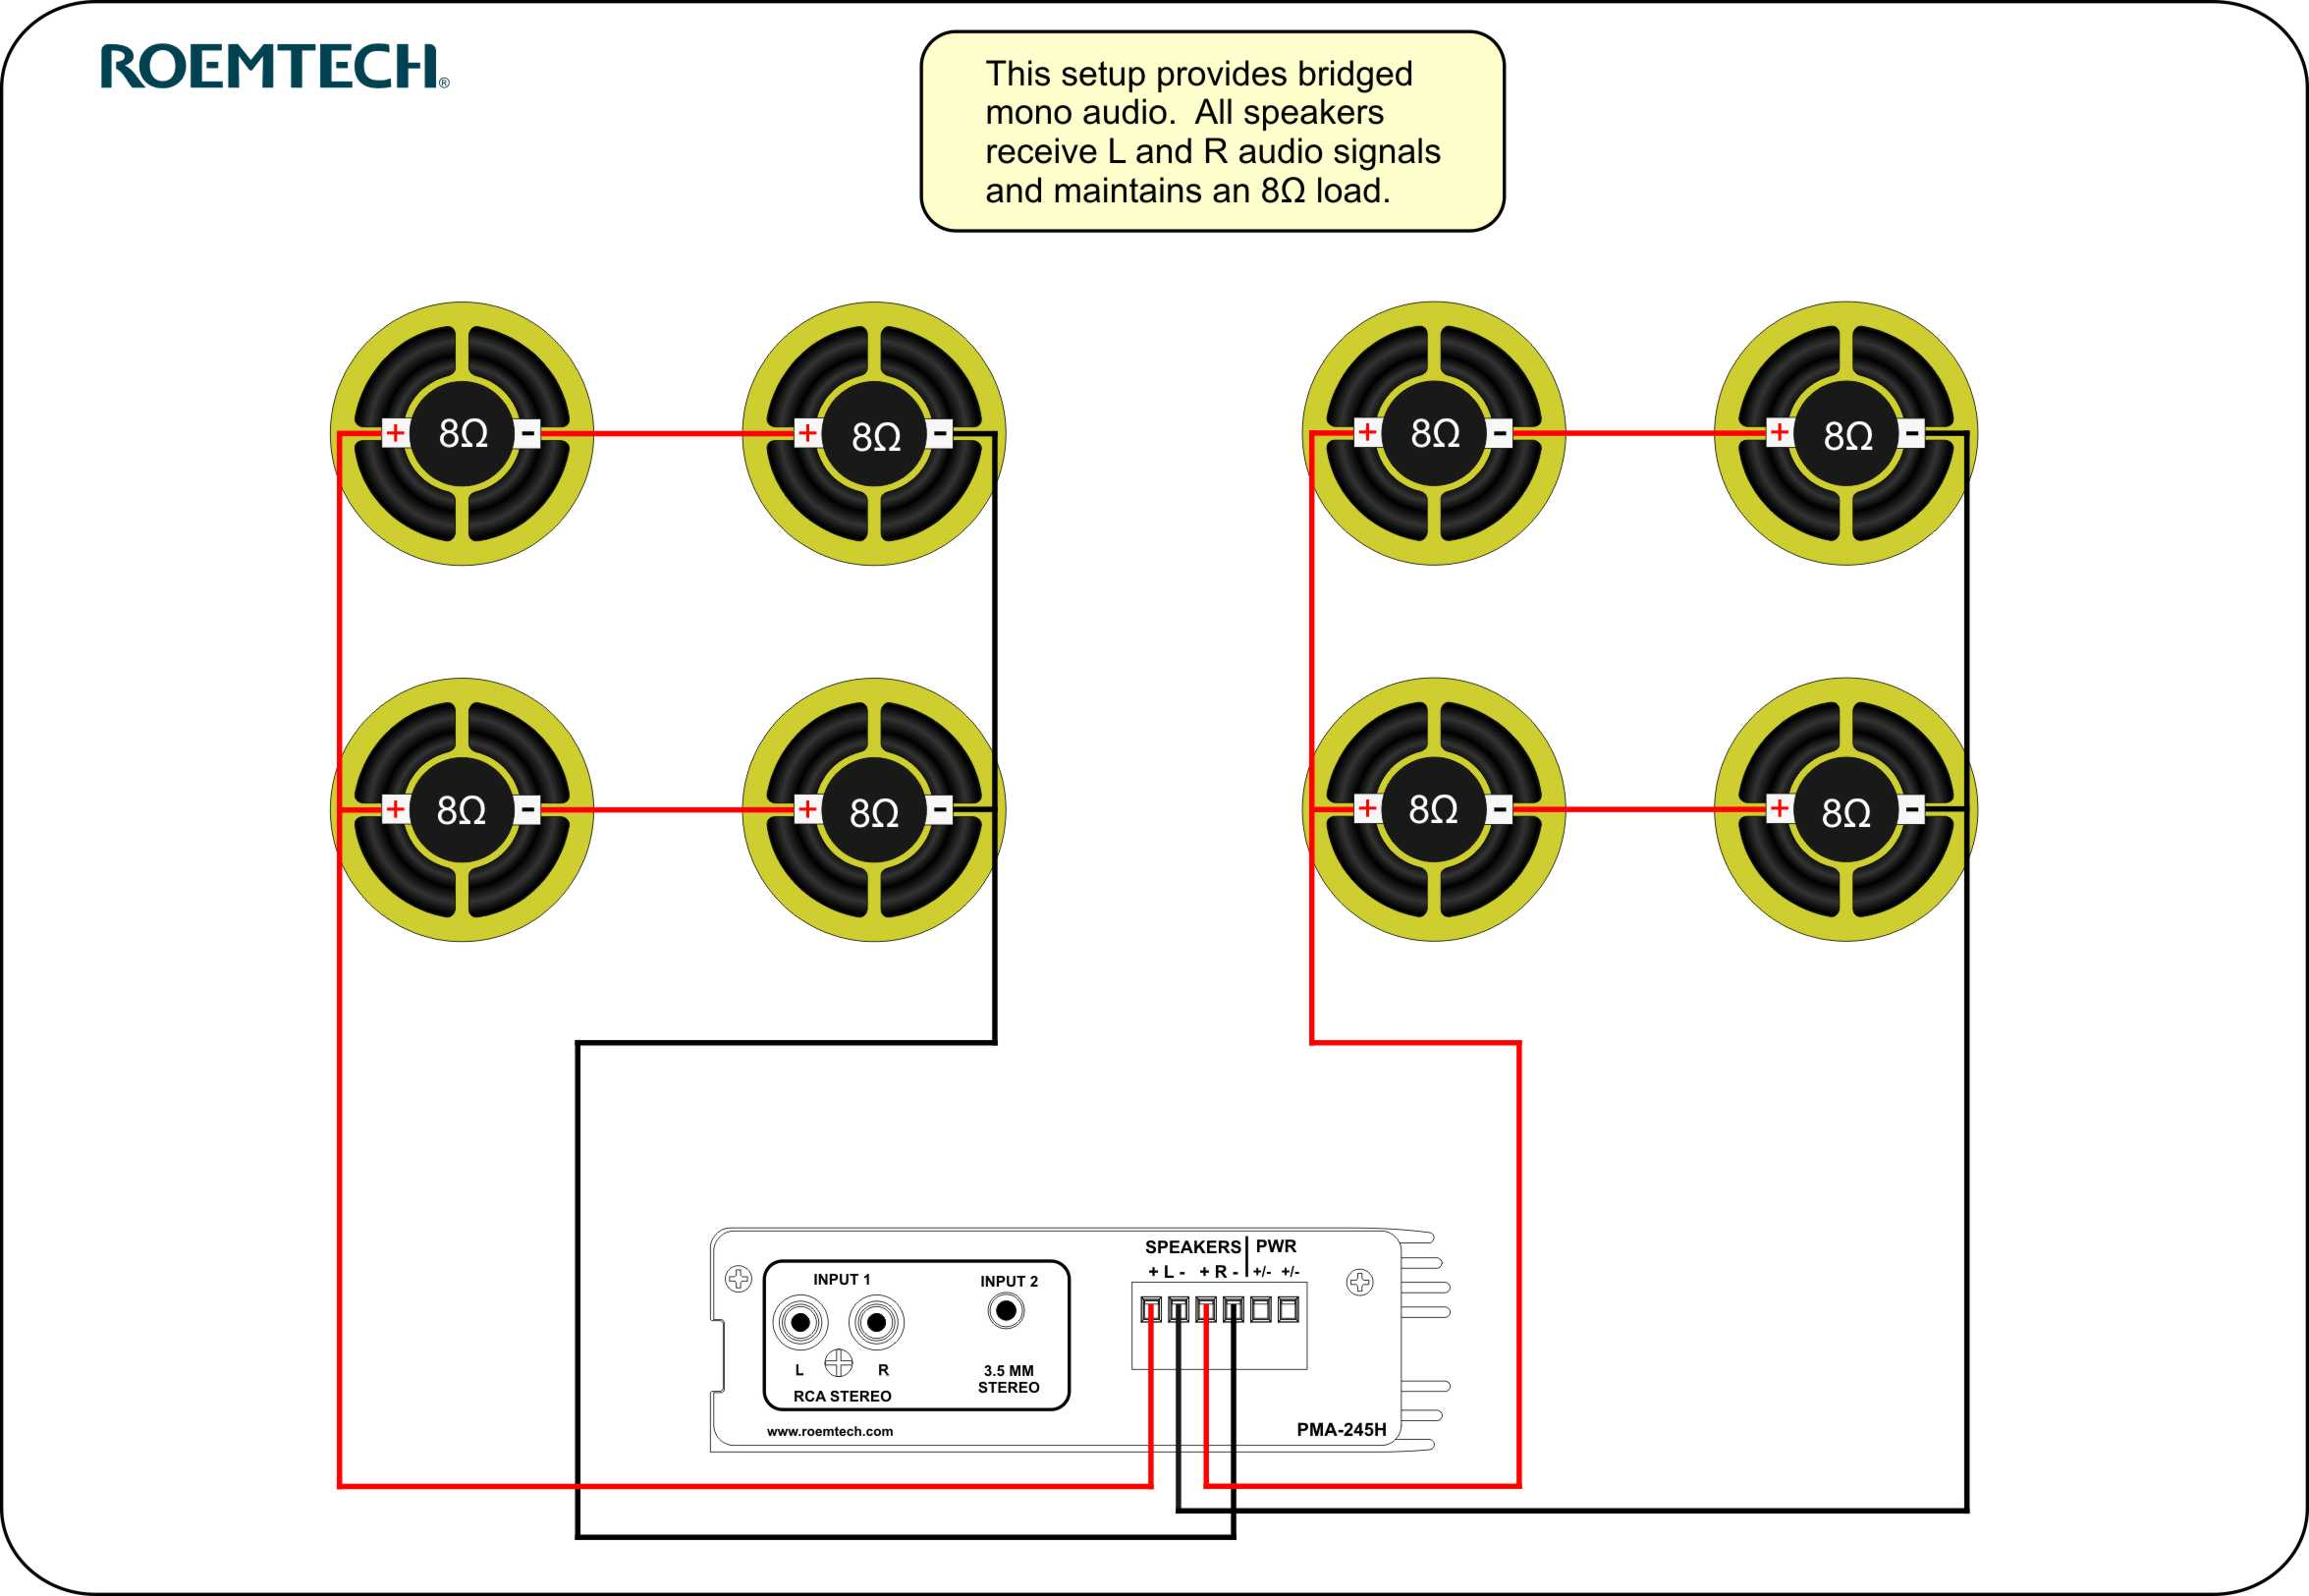 classroom_audio_multiple_speaker classroom audio systems multiple speaker wiring diagram multiple speaker wiring diagram at panicattacktreatment.co